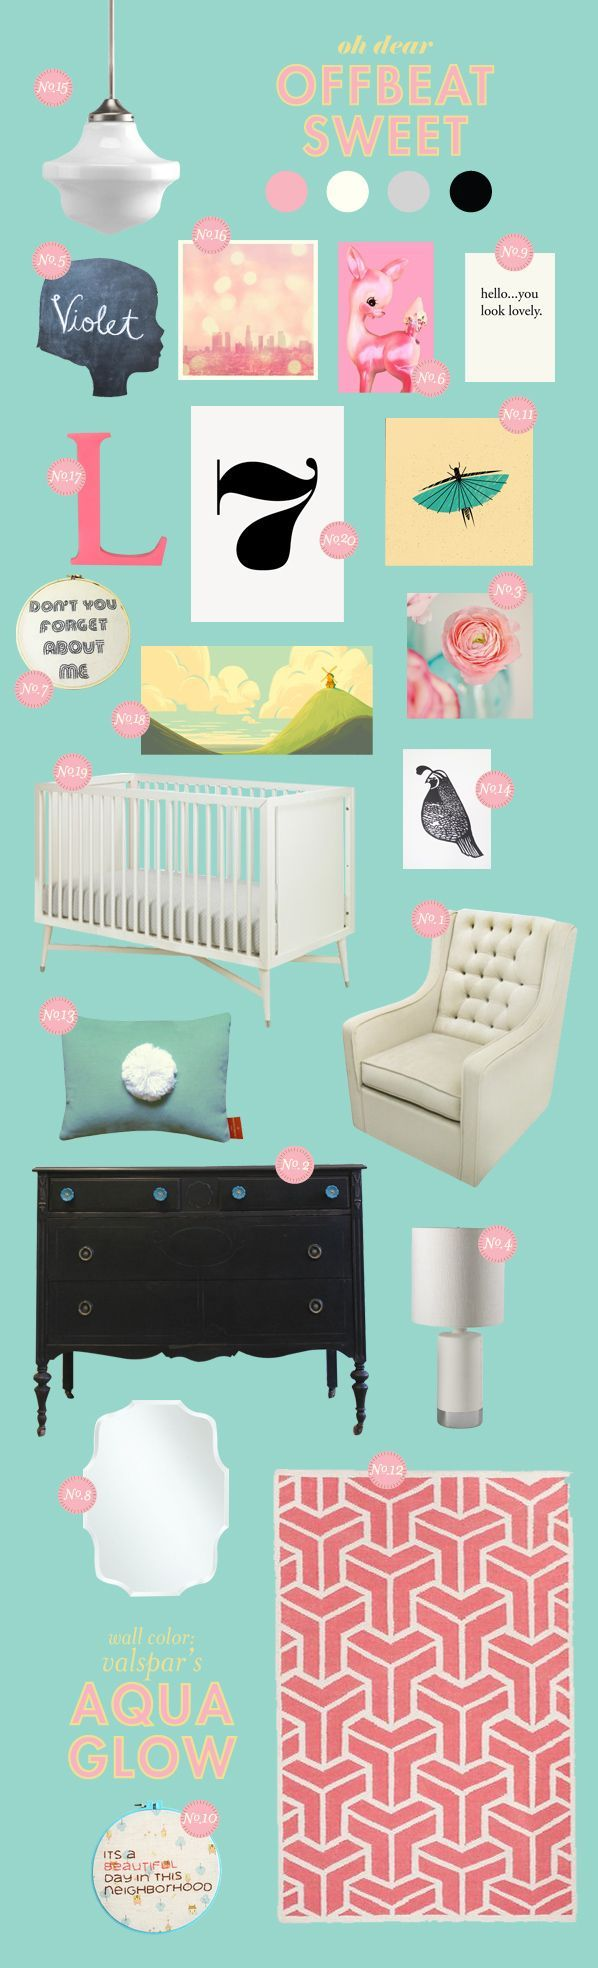 Sweet Pinned for all my girlfriends who have babies, for the expectant moms, and anyone who just loves nurseries. So full of cute and amazing ideas I think I might want to re-do Elyse's room every month!    Pinned for all my girlfriends who have babies, for the expectant moms, and anyone who just loves nurseries. So full of cute and amazing ideas I ...